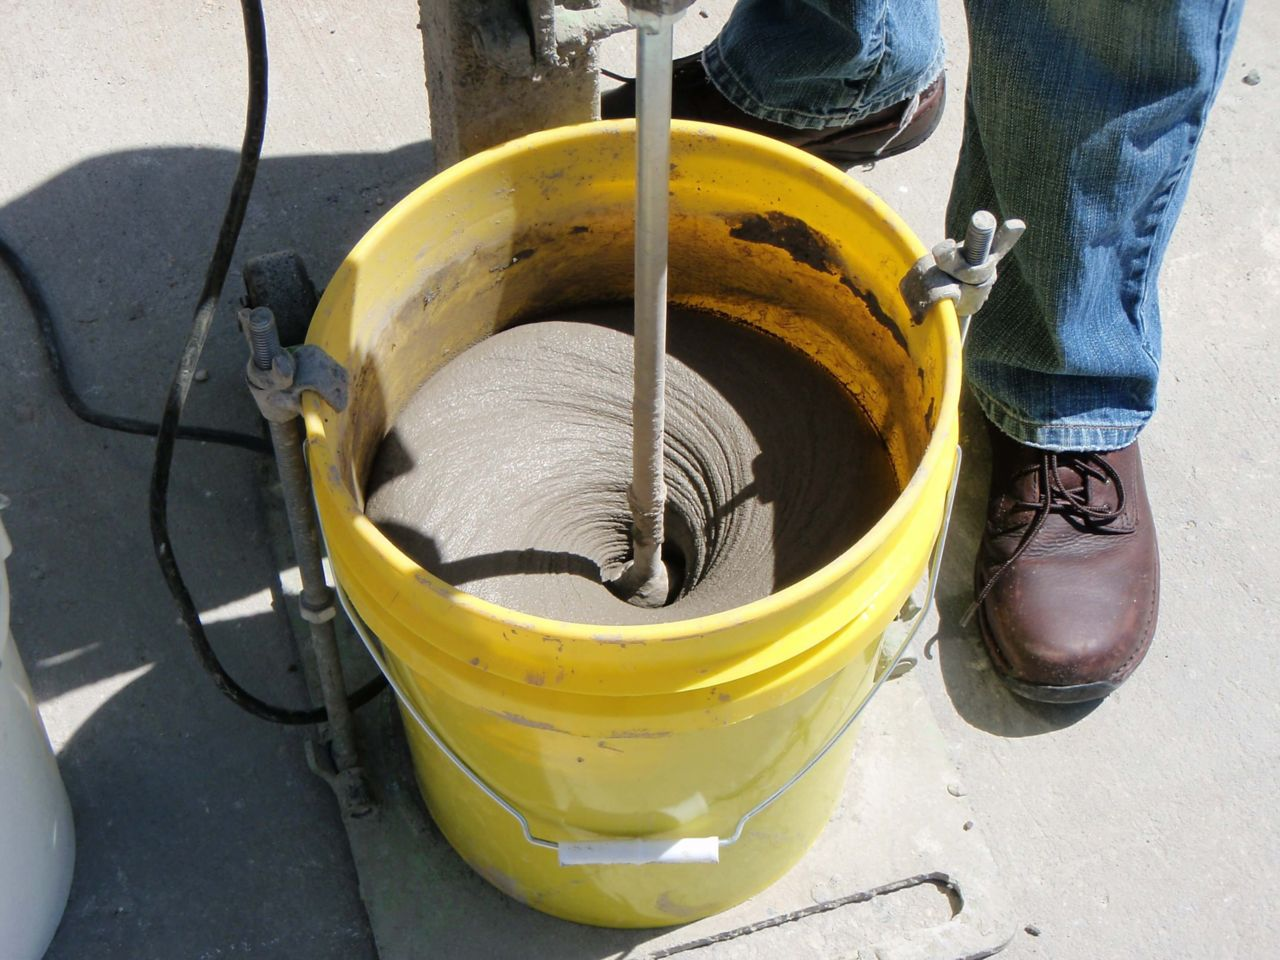 saw on concrete to demonstrate low dust